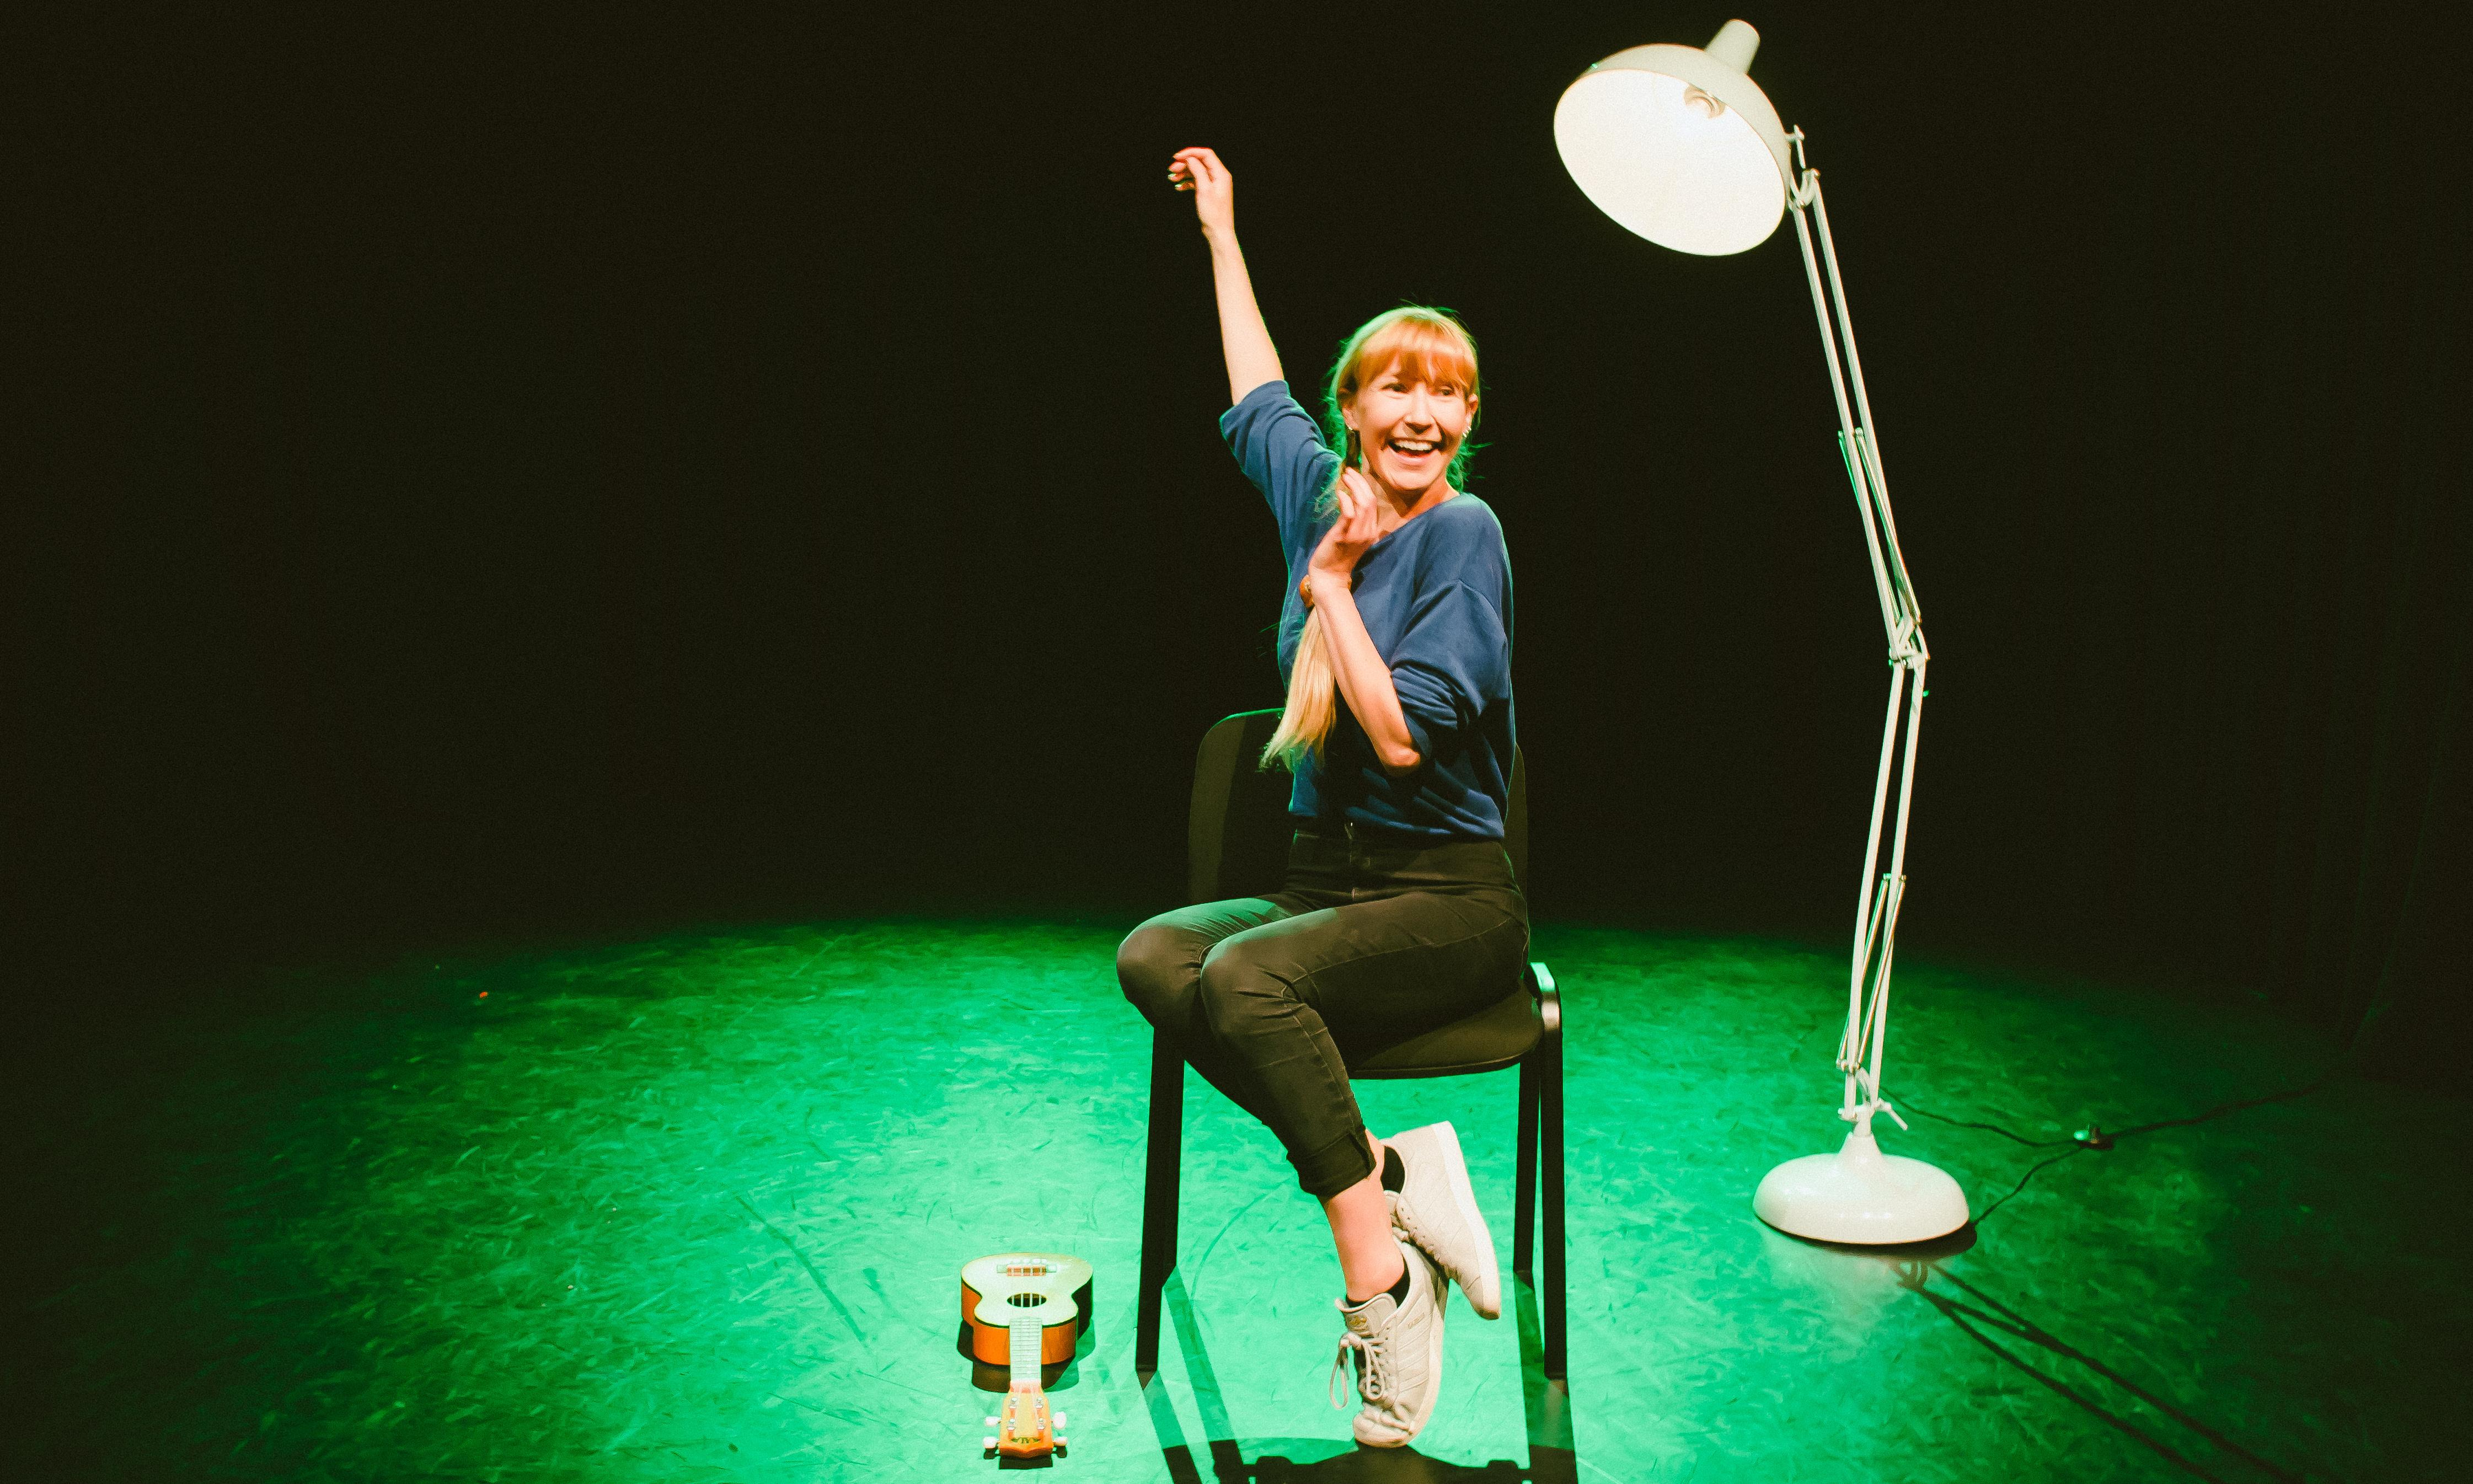 Sexy Lamp review – actor shines stark light on the misogyny of her industry